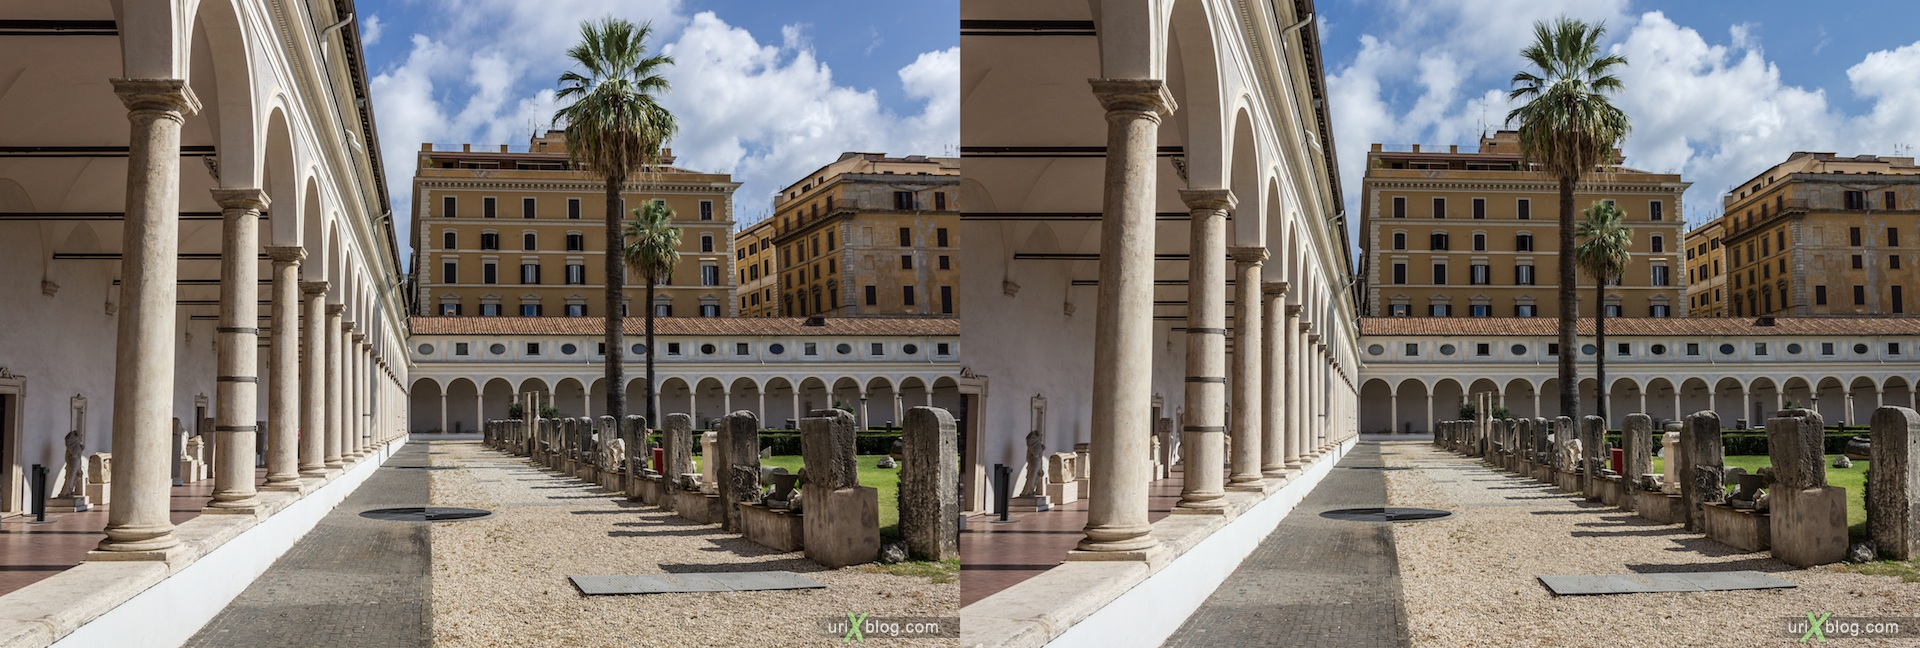 2012, courtyard, National Museum of Rome, Diocletian Baths, Rome, Italy, Europe, 3D, stereo pair, cross-eyed, crossview, cross view stereo pair